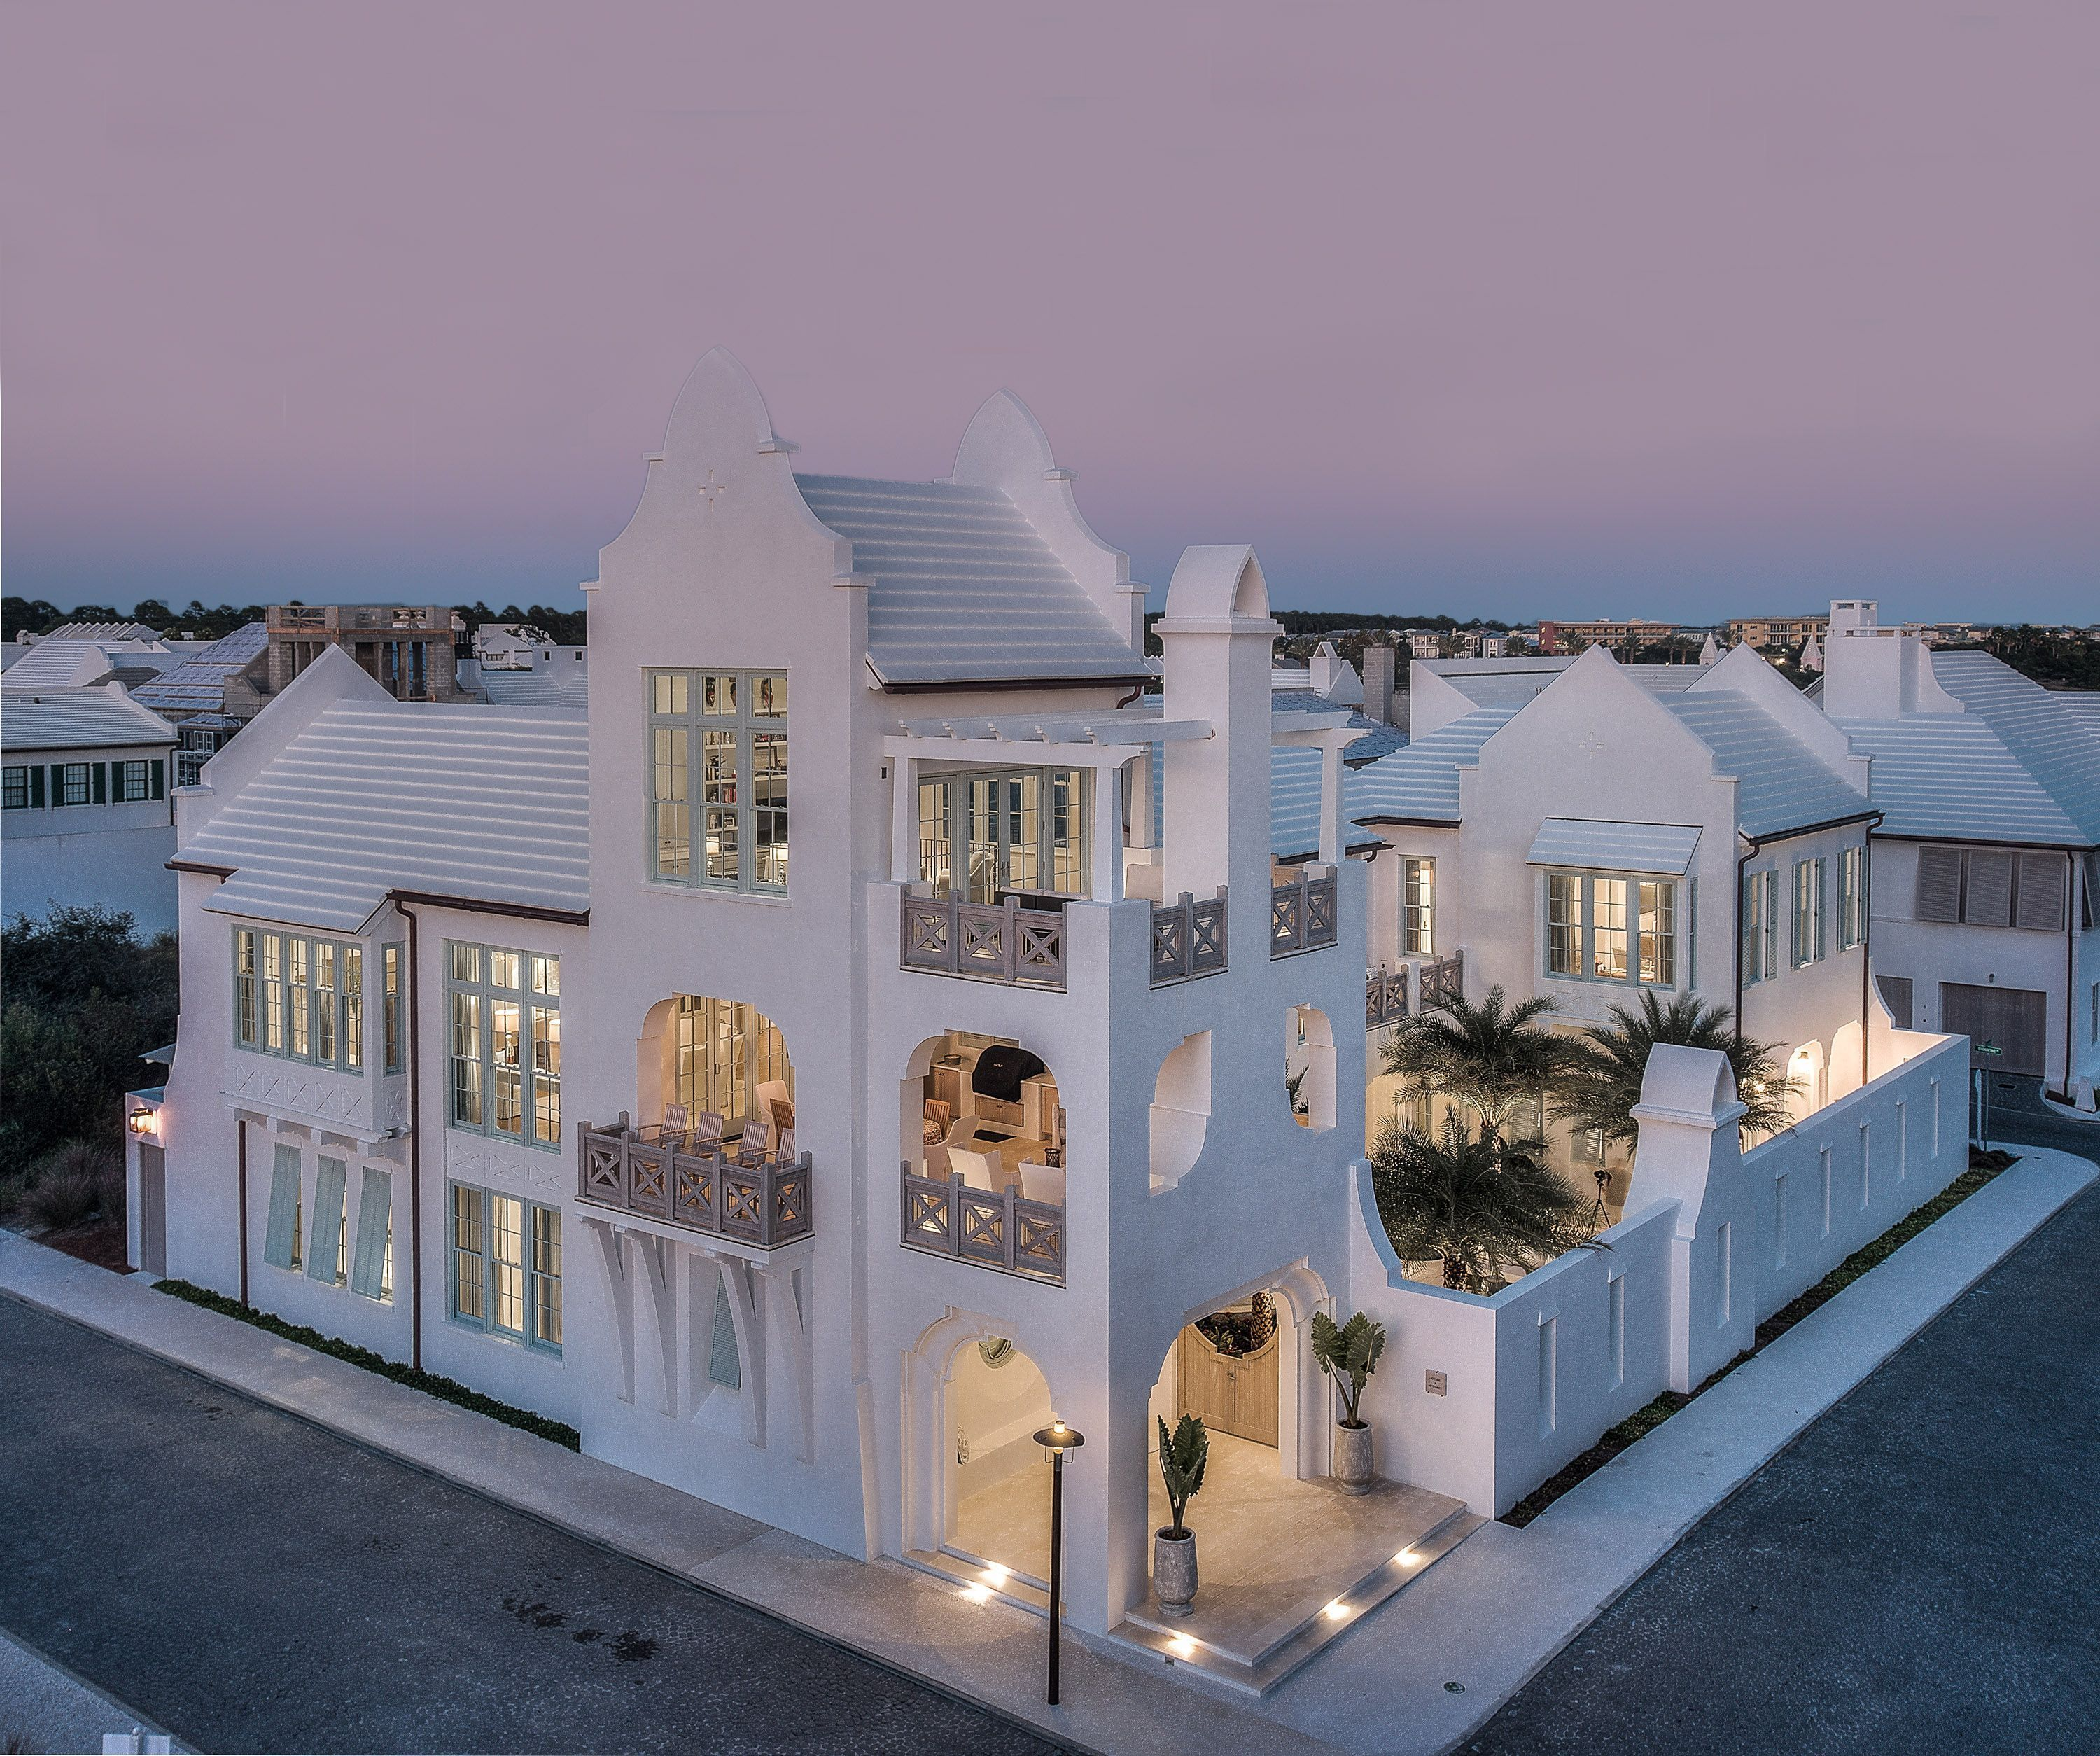 Twilight Photography Of A Mediterranean Style Luxury Home In Alys